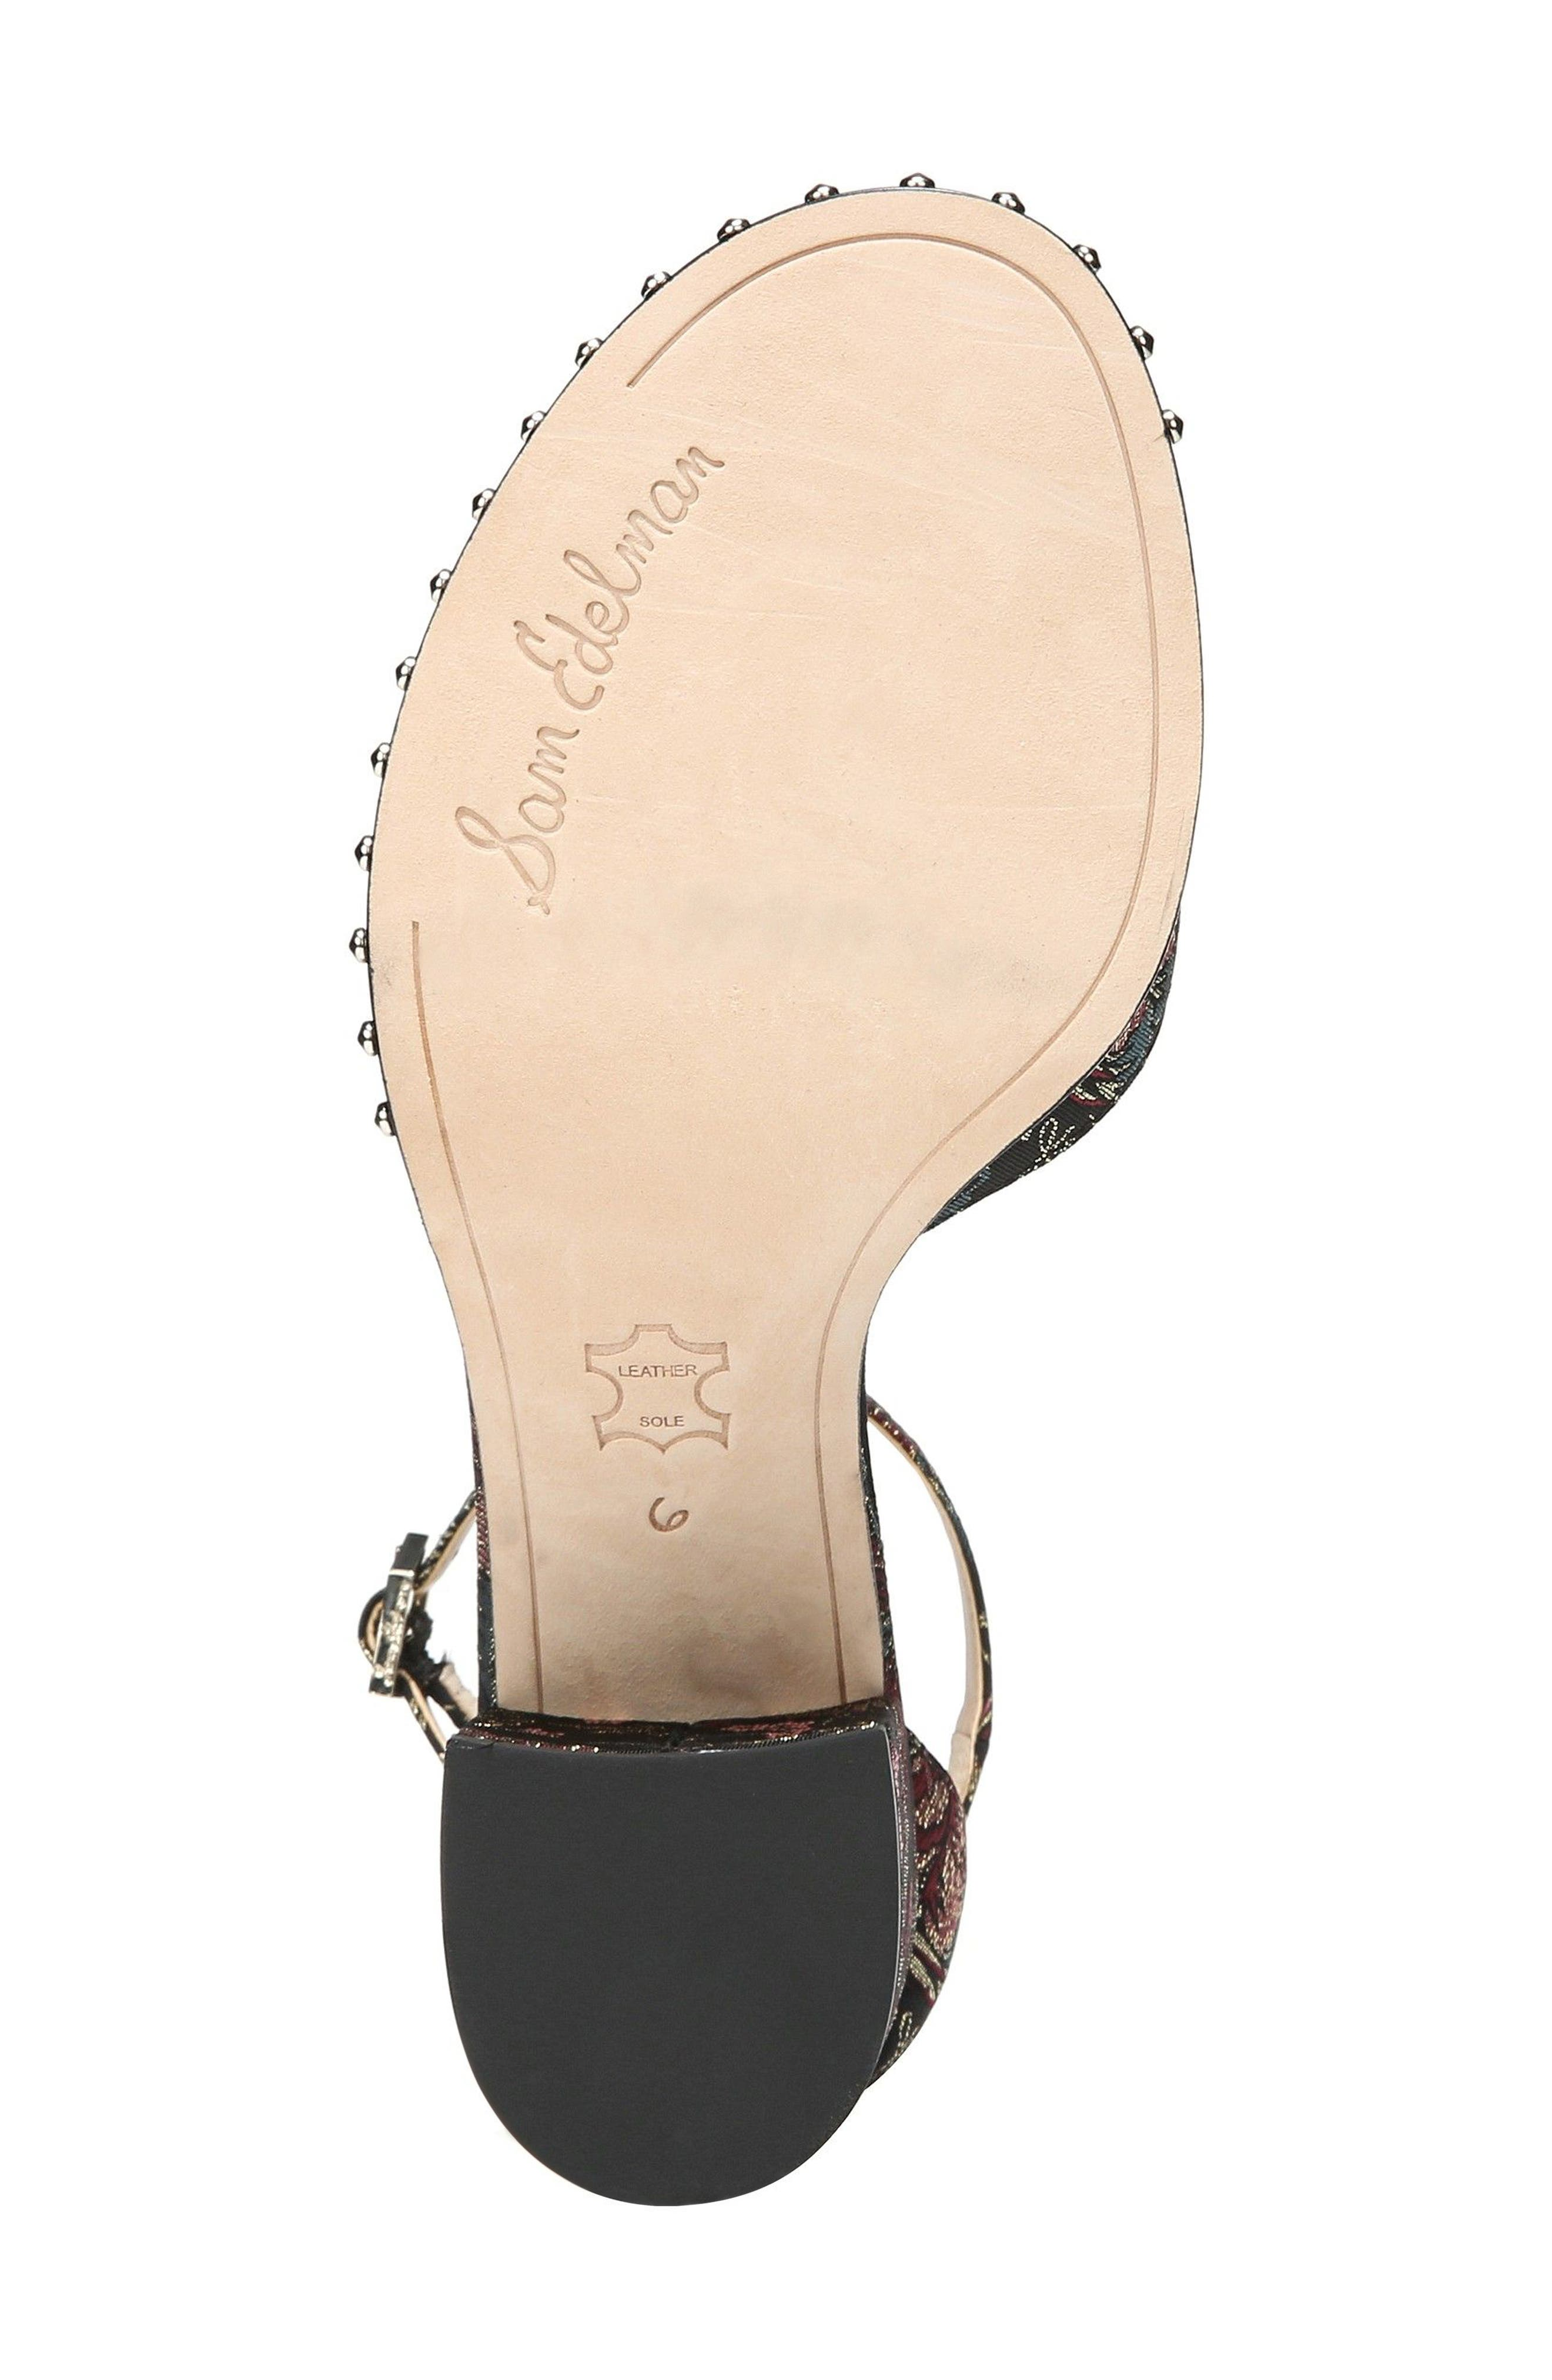 Susie Ankle Strap Sandal,                             Alternate thumbnail 6, color,                             002